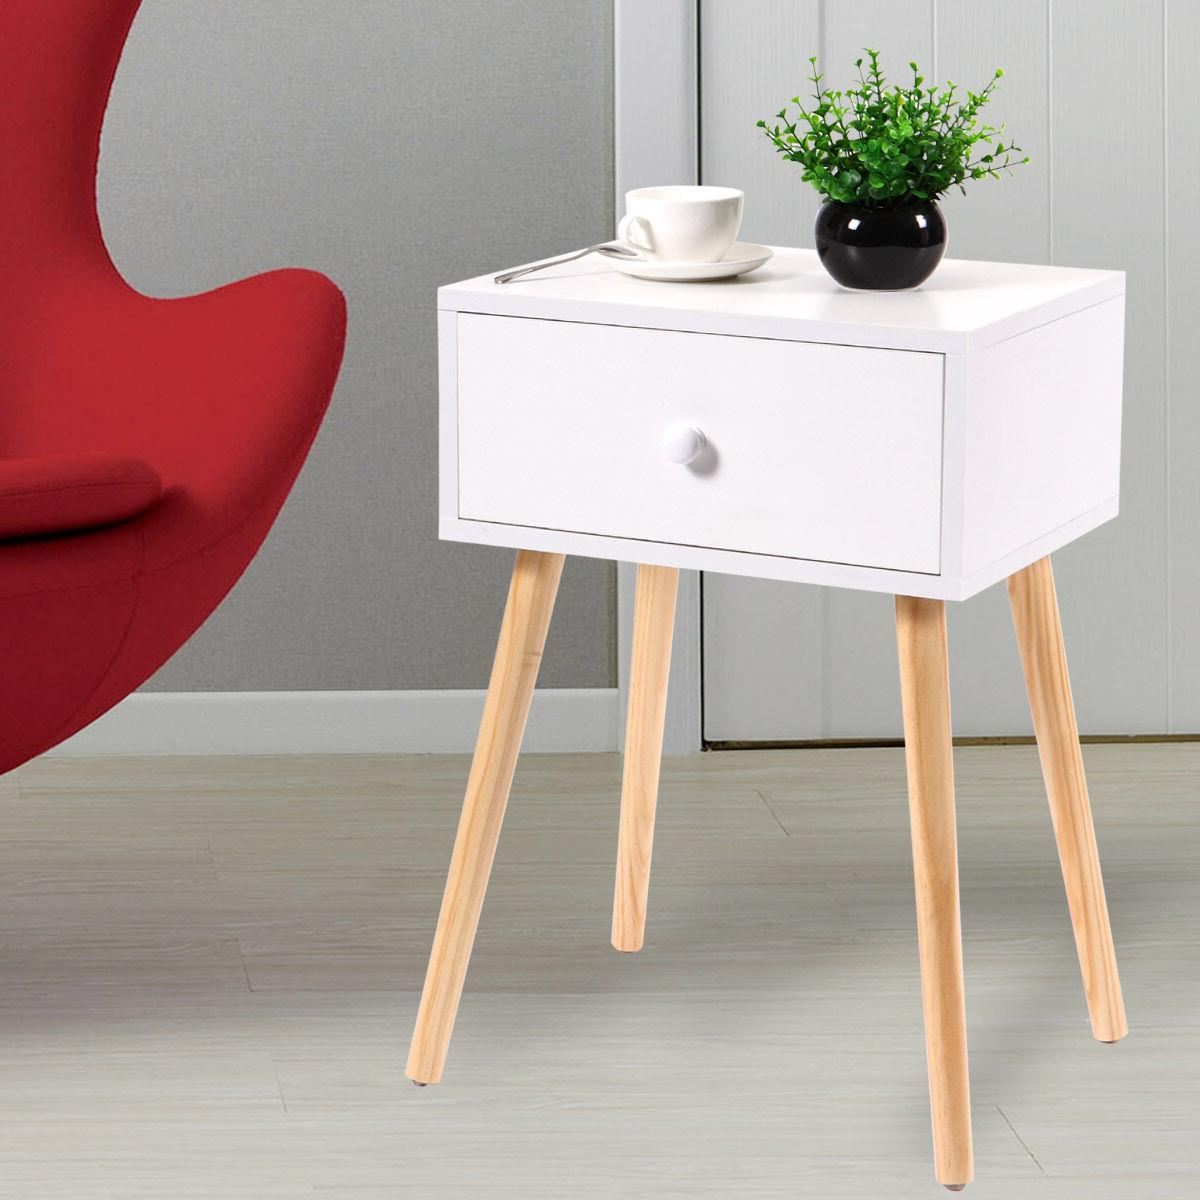 wooden tea side table nightstand